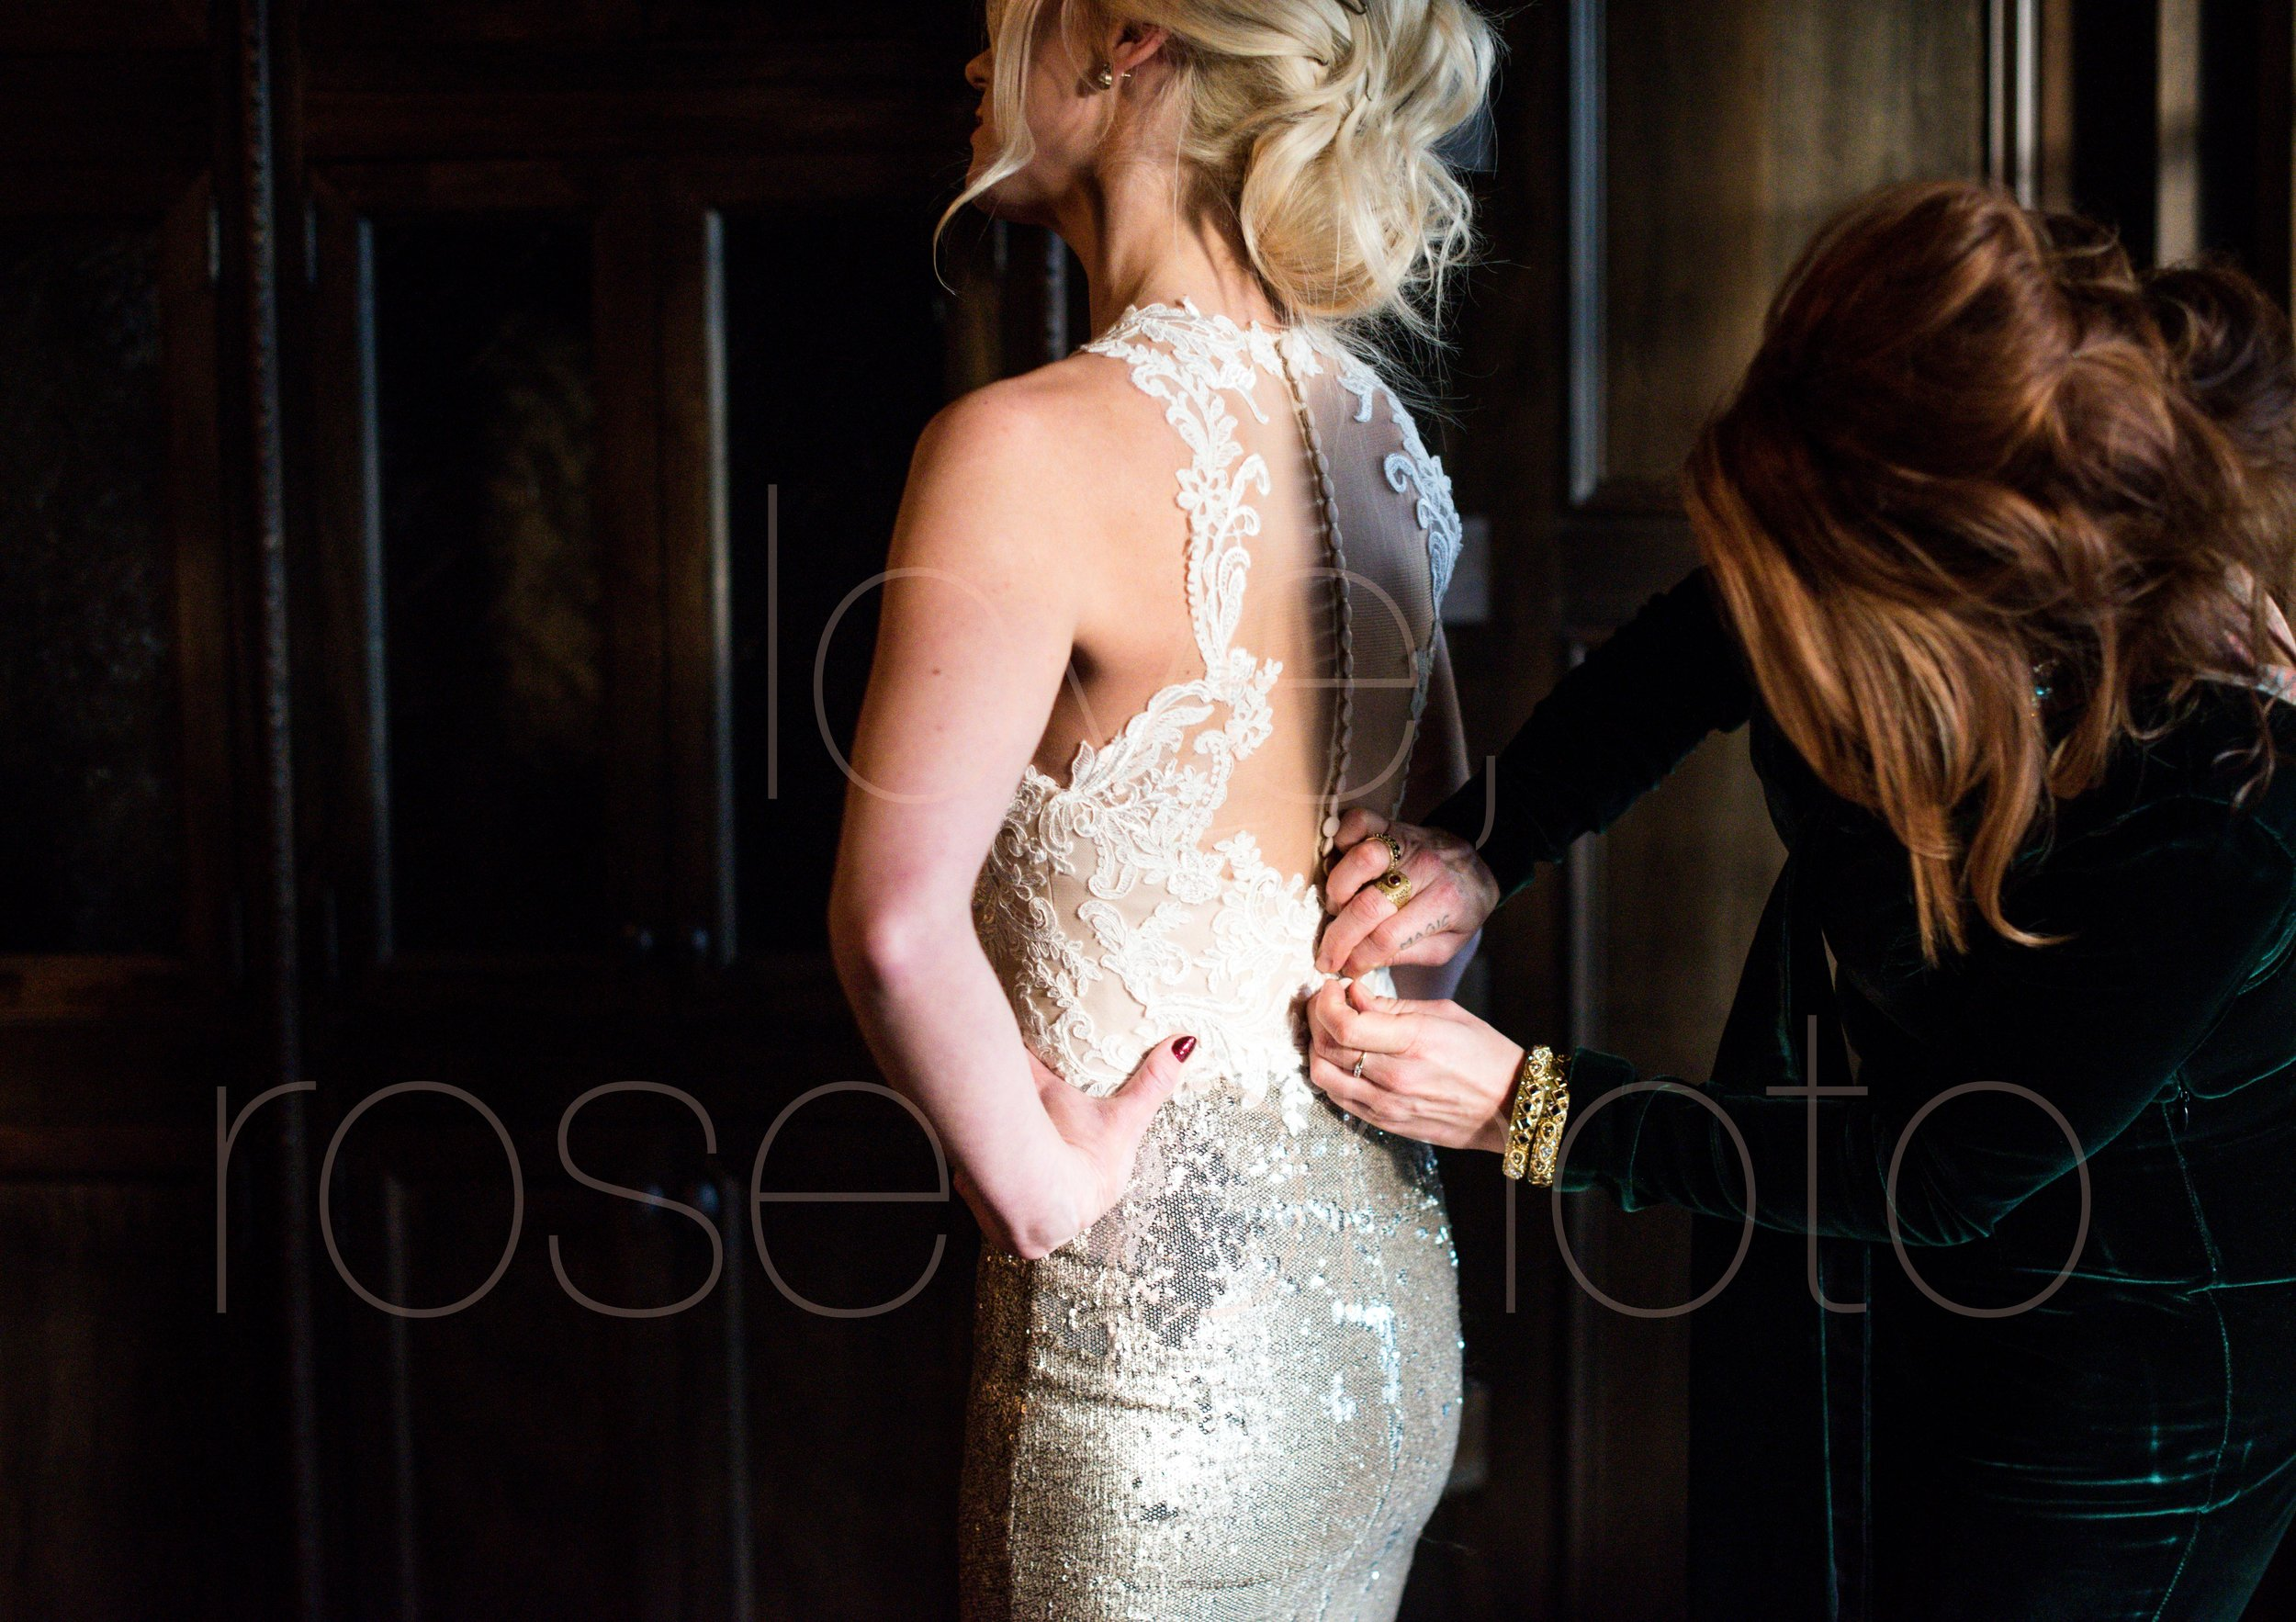 best wedding photographer rose photo asheville chicago new york photo collective-16.jpg